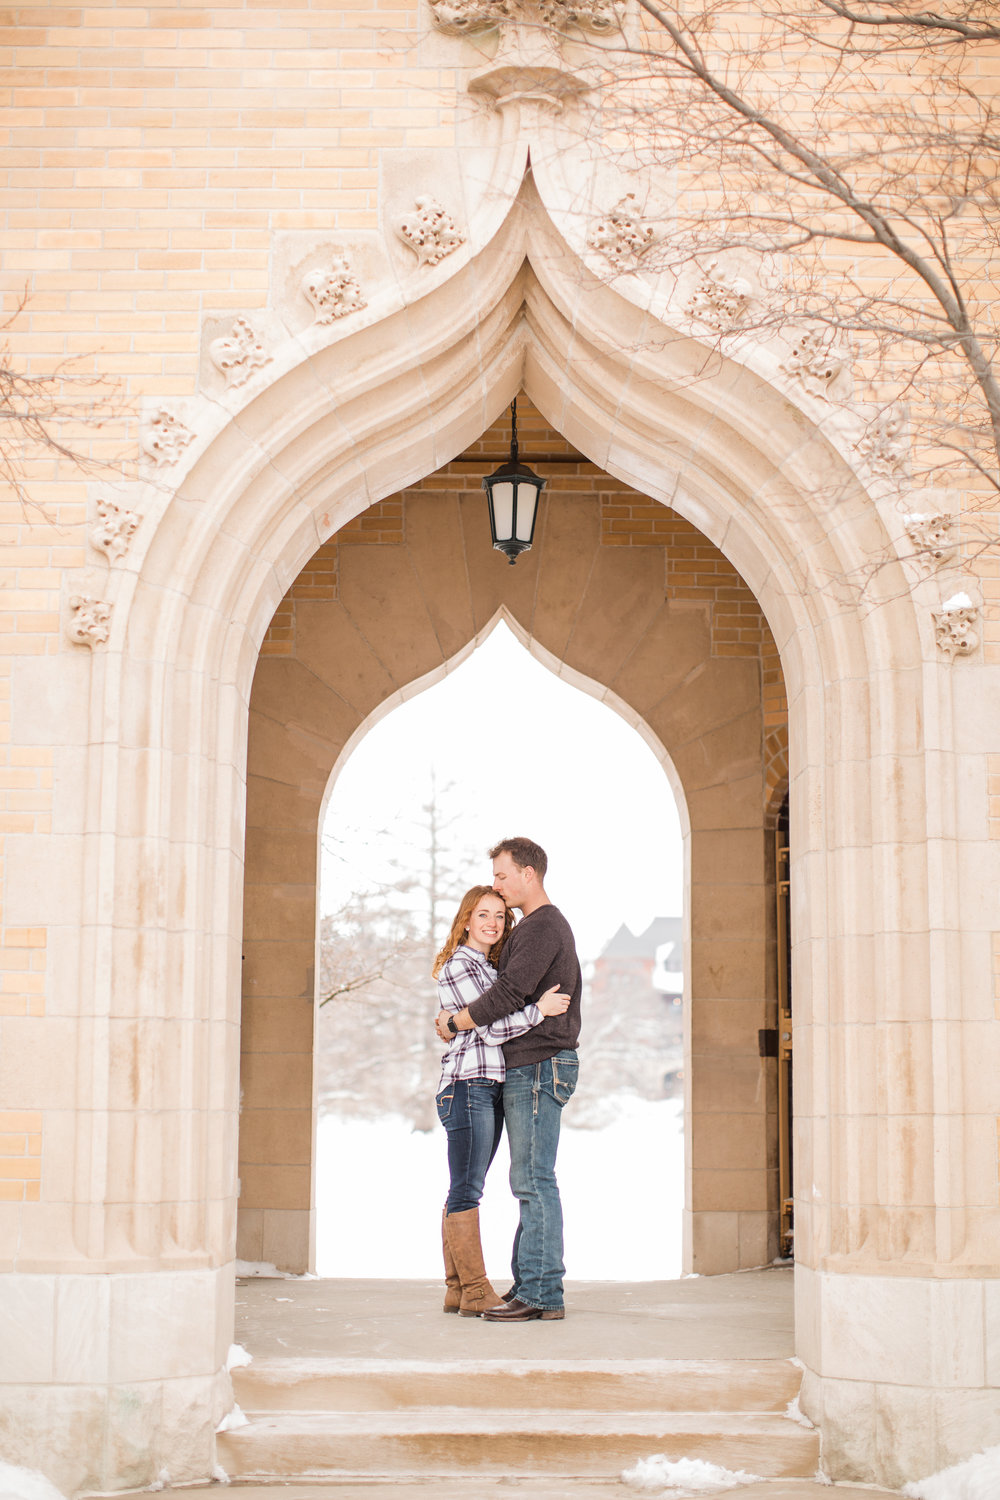 winter snowy engagement pictures on campus ideas